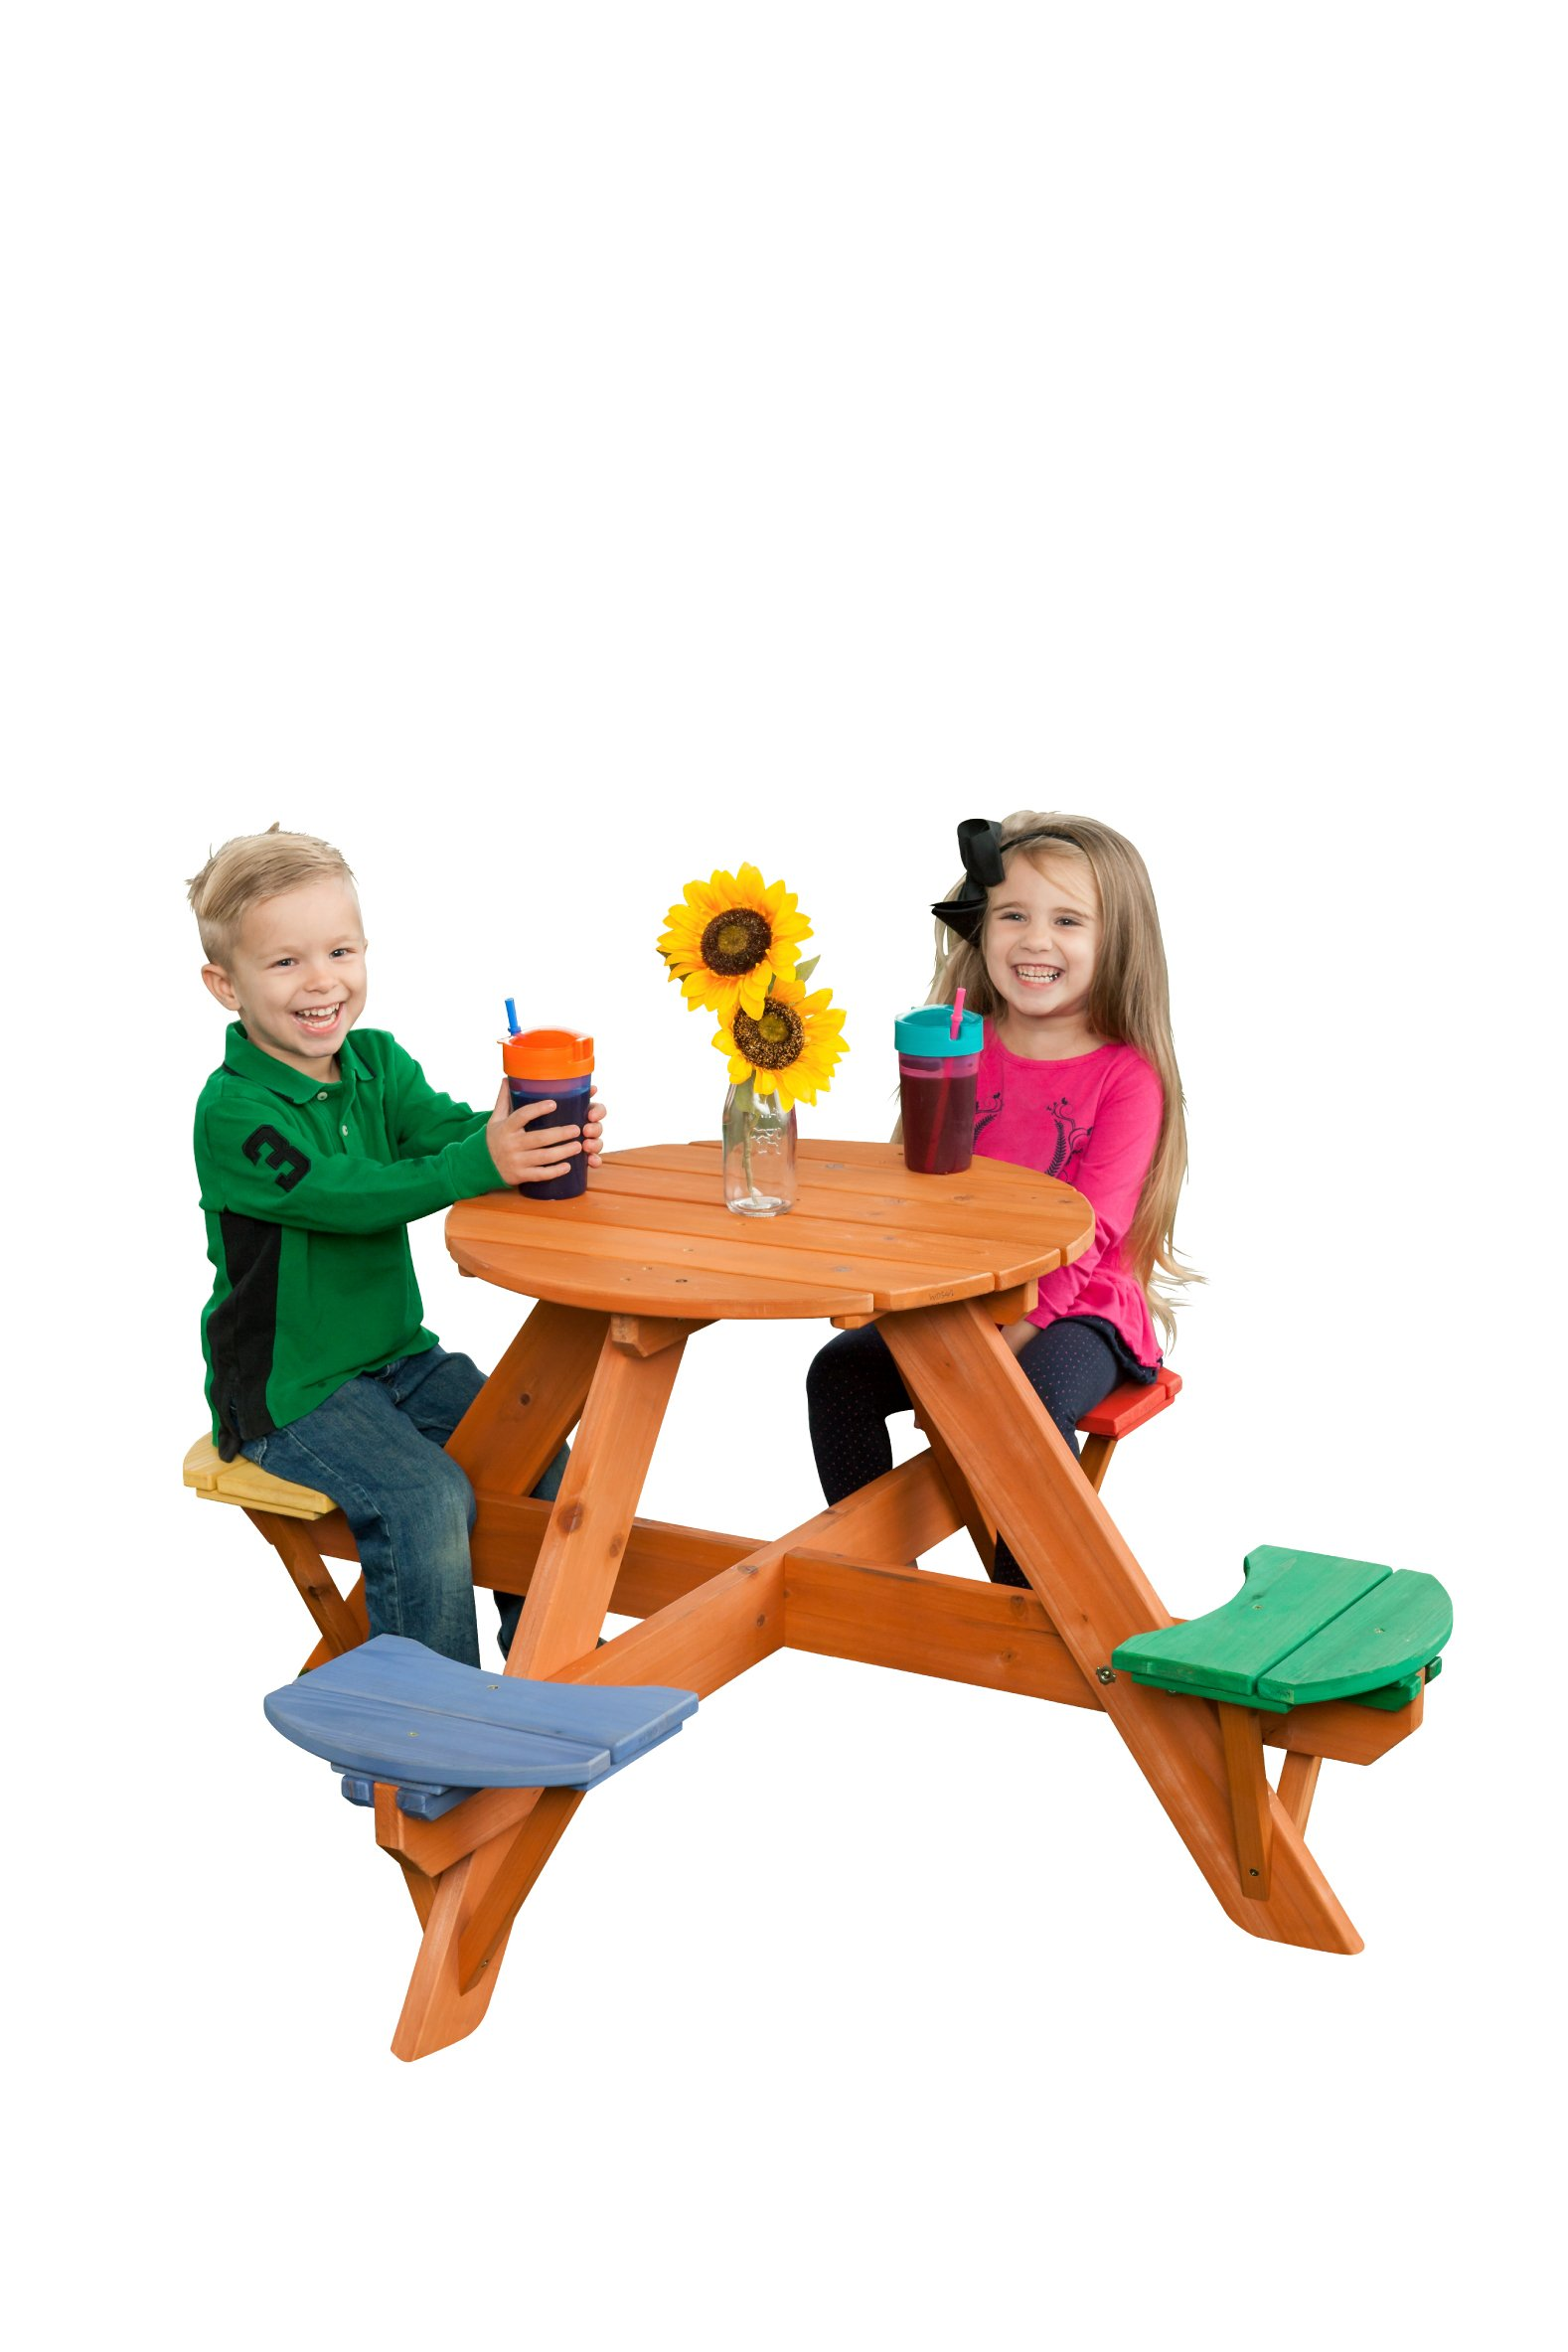 Creative Cedar Designs 7605 Childrens Wooden Picnic Table w/Seats, Cedar Wood With Blue, green, Red, And Yellow Seats